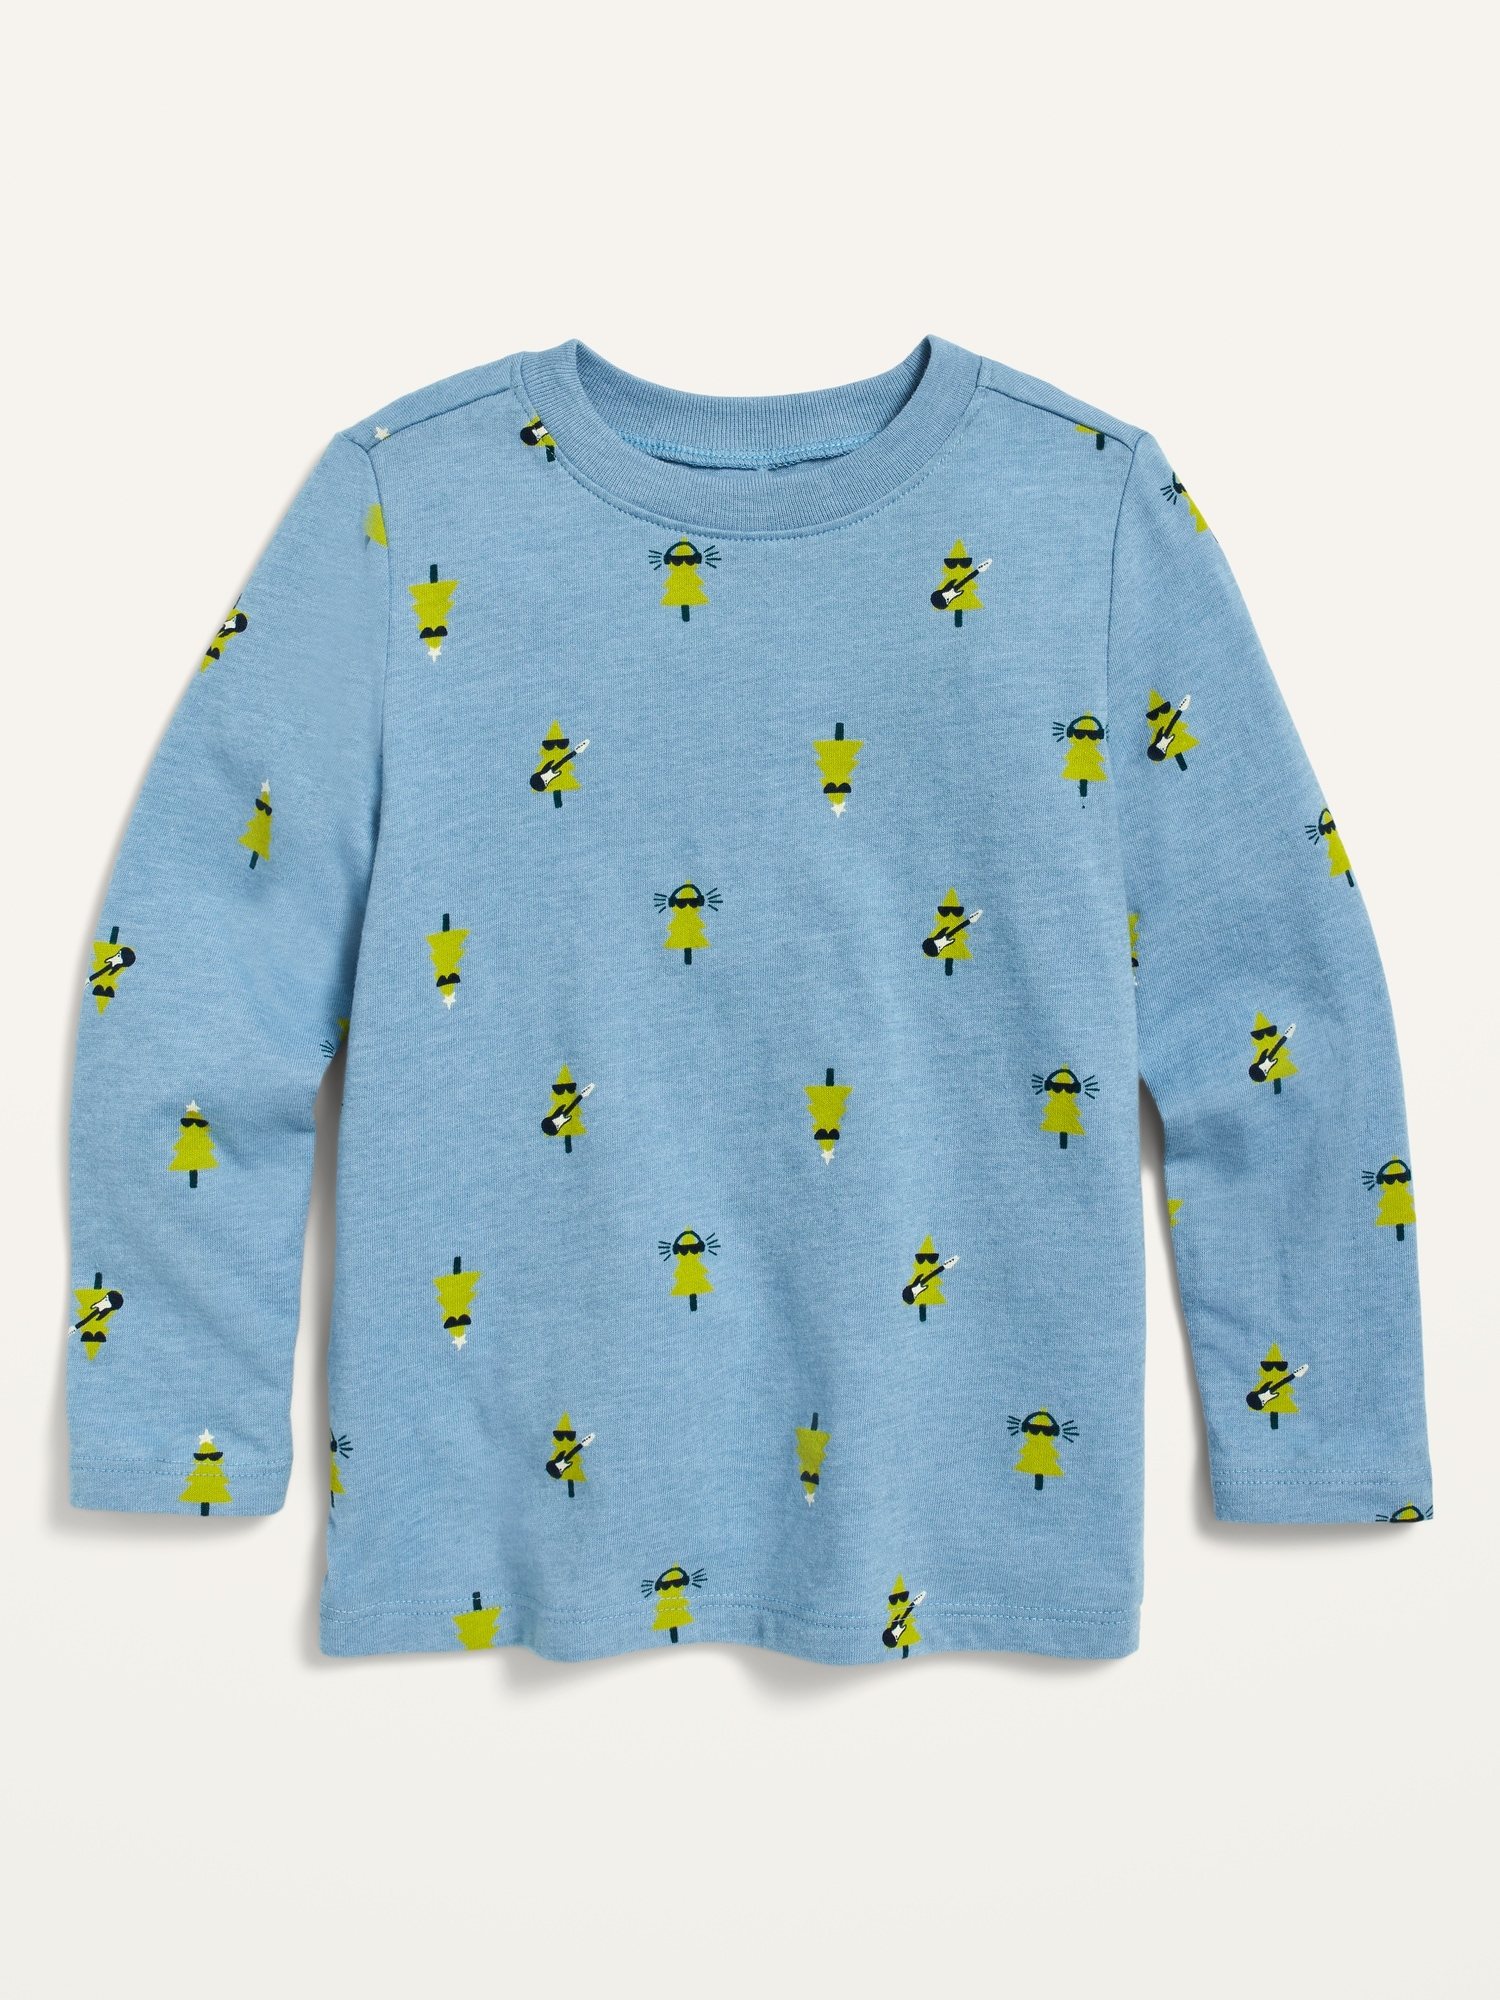 Long-Sleeve Printed Tee for Toddler Boys